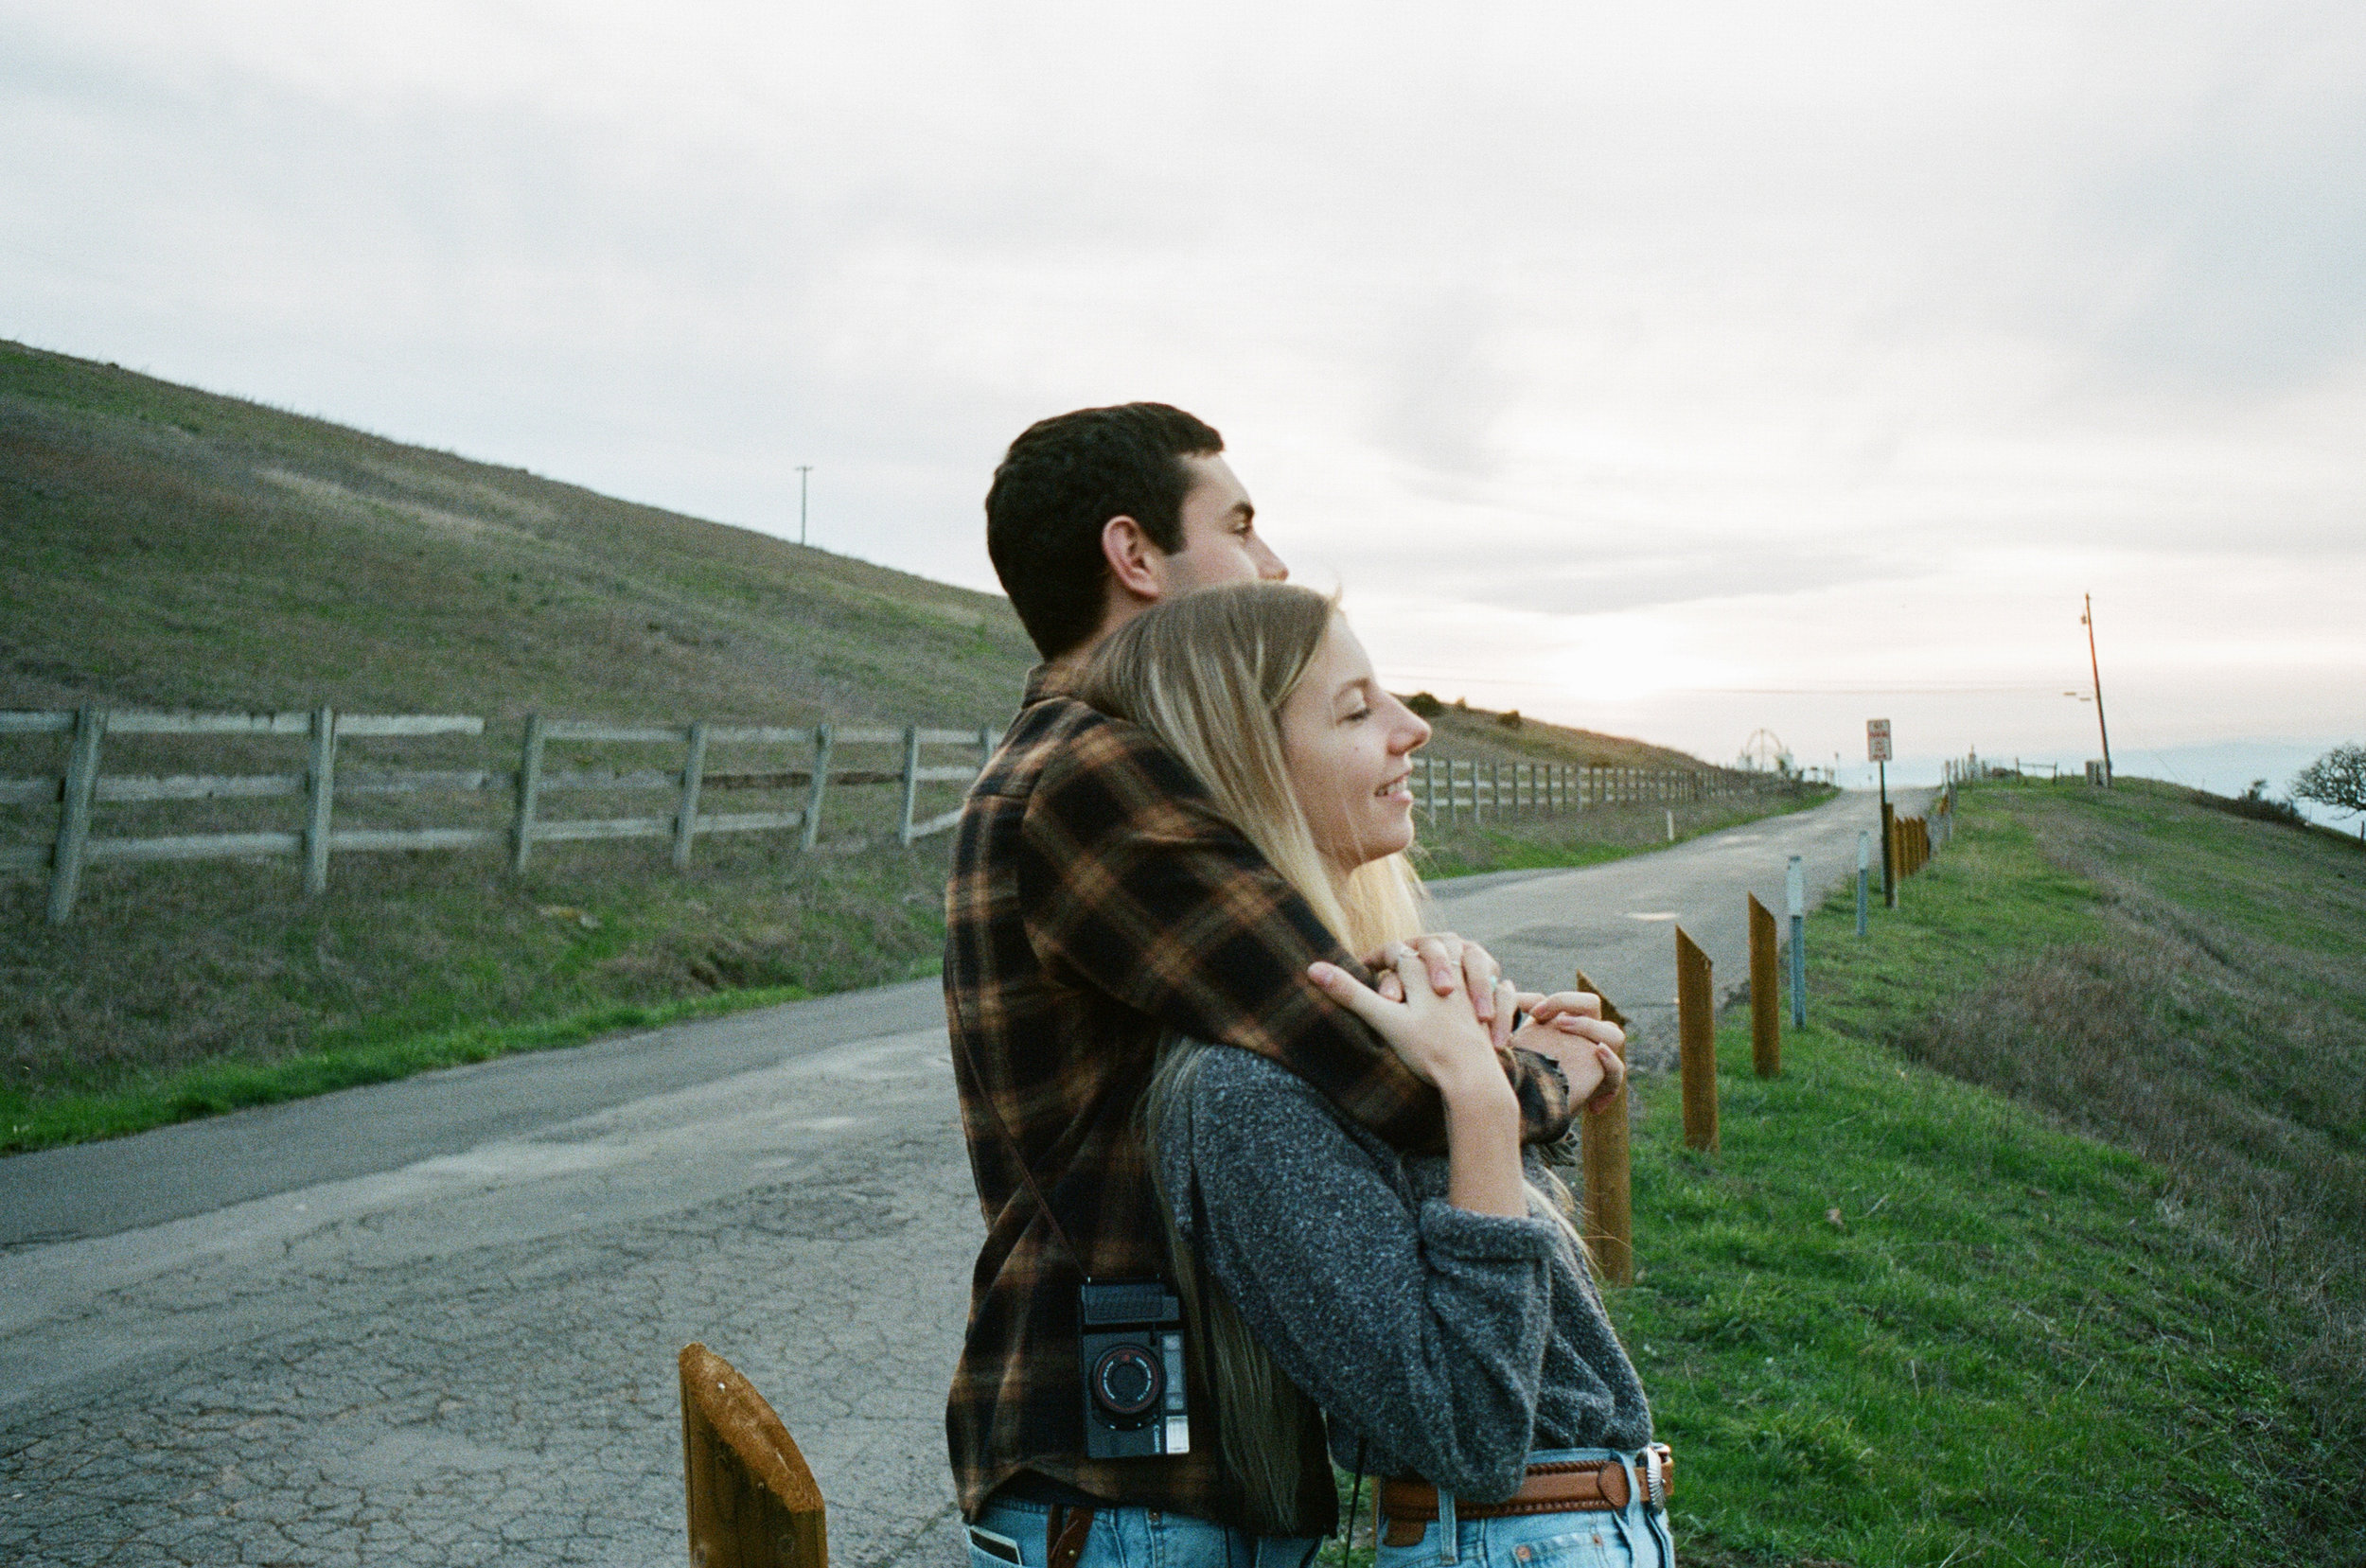 hannah&cole-california-film-jan2019-peytoncurry-000098780025.jpg